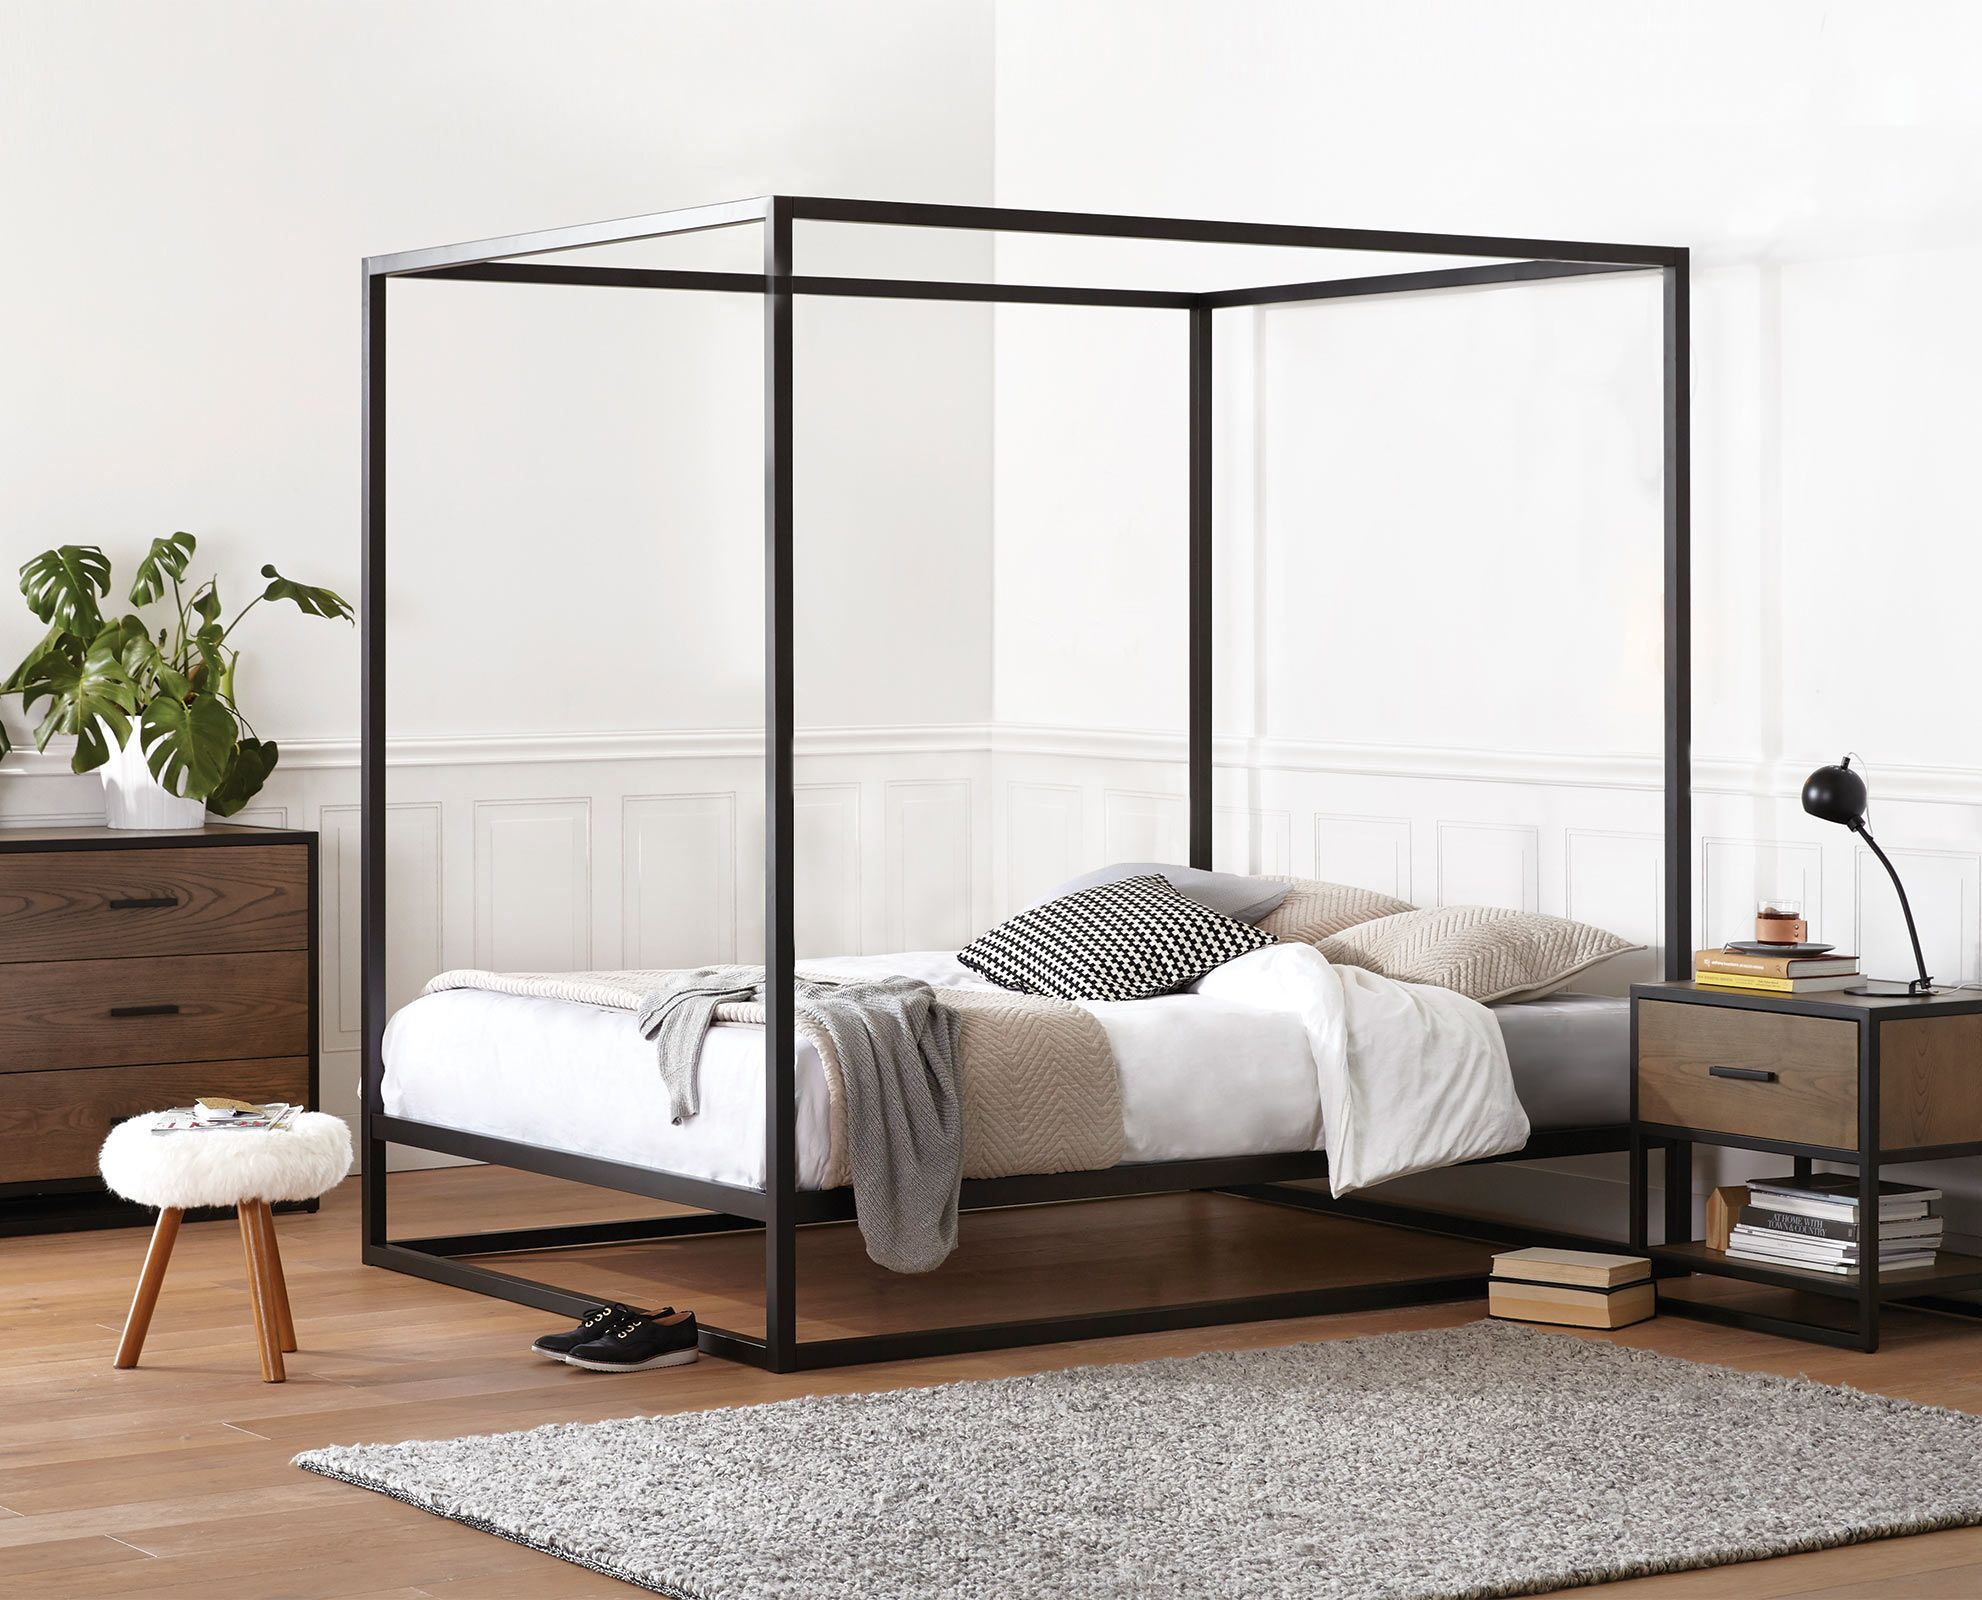 Oppet Bed By Scandinavian Designs Enjoy The Romantic Style Of The Oppet Canopy Bed Adding Height And Dimension To Your Bedro Bed Bedroom Furniture Canopy Bed